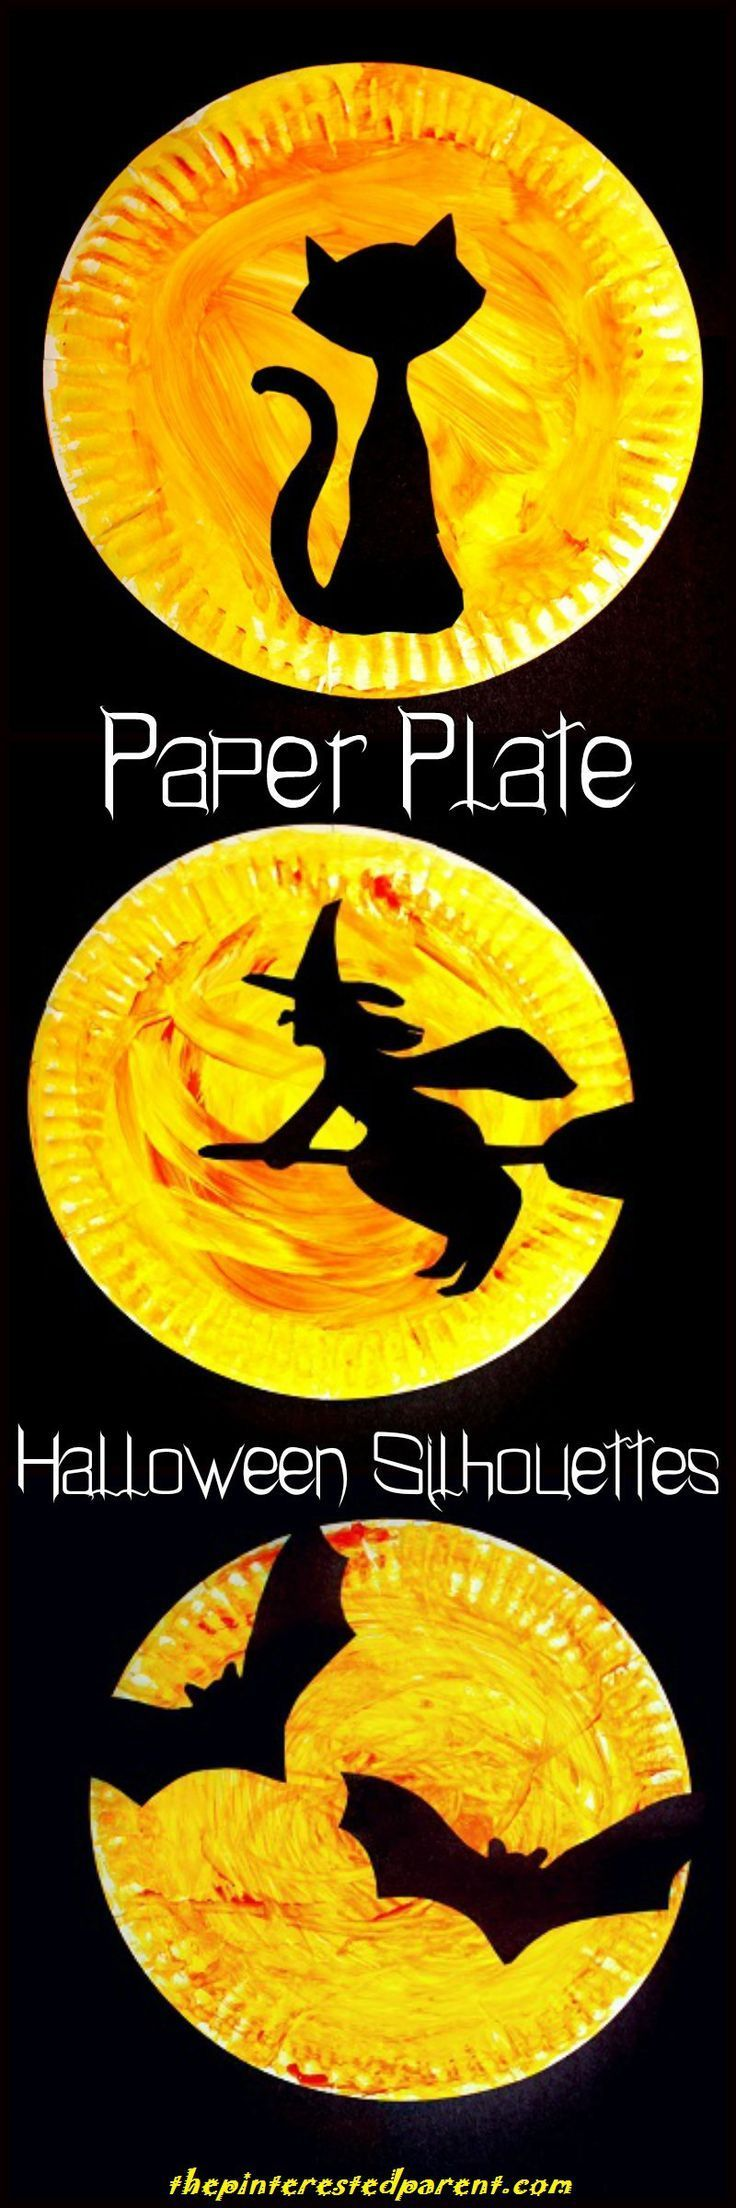 Halloween Paper Plate Silhouettes Halloween crafts for kids